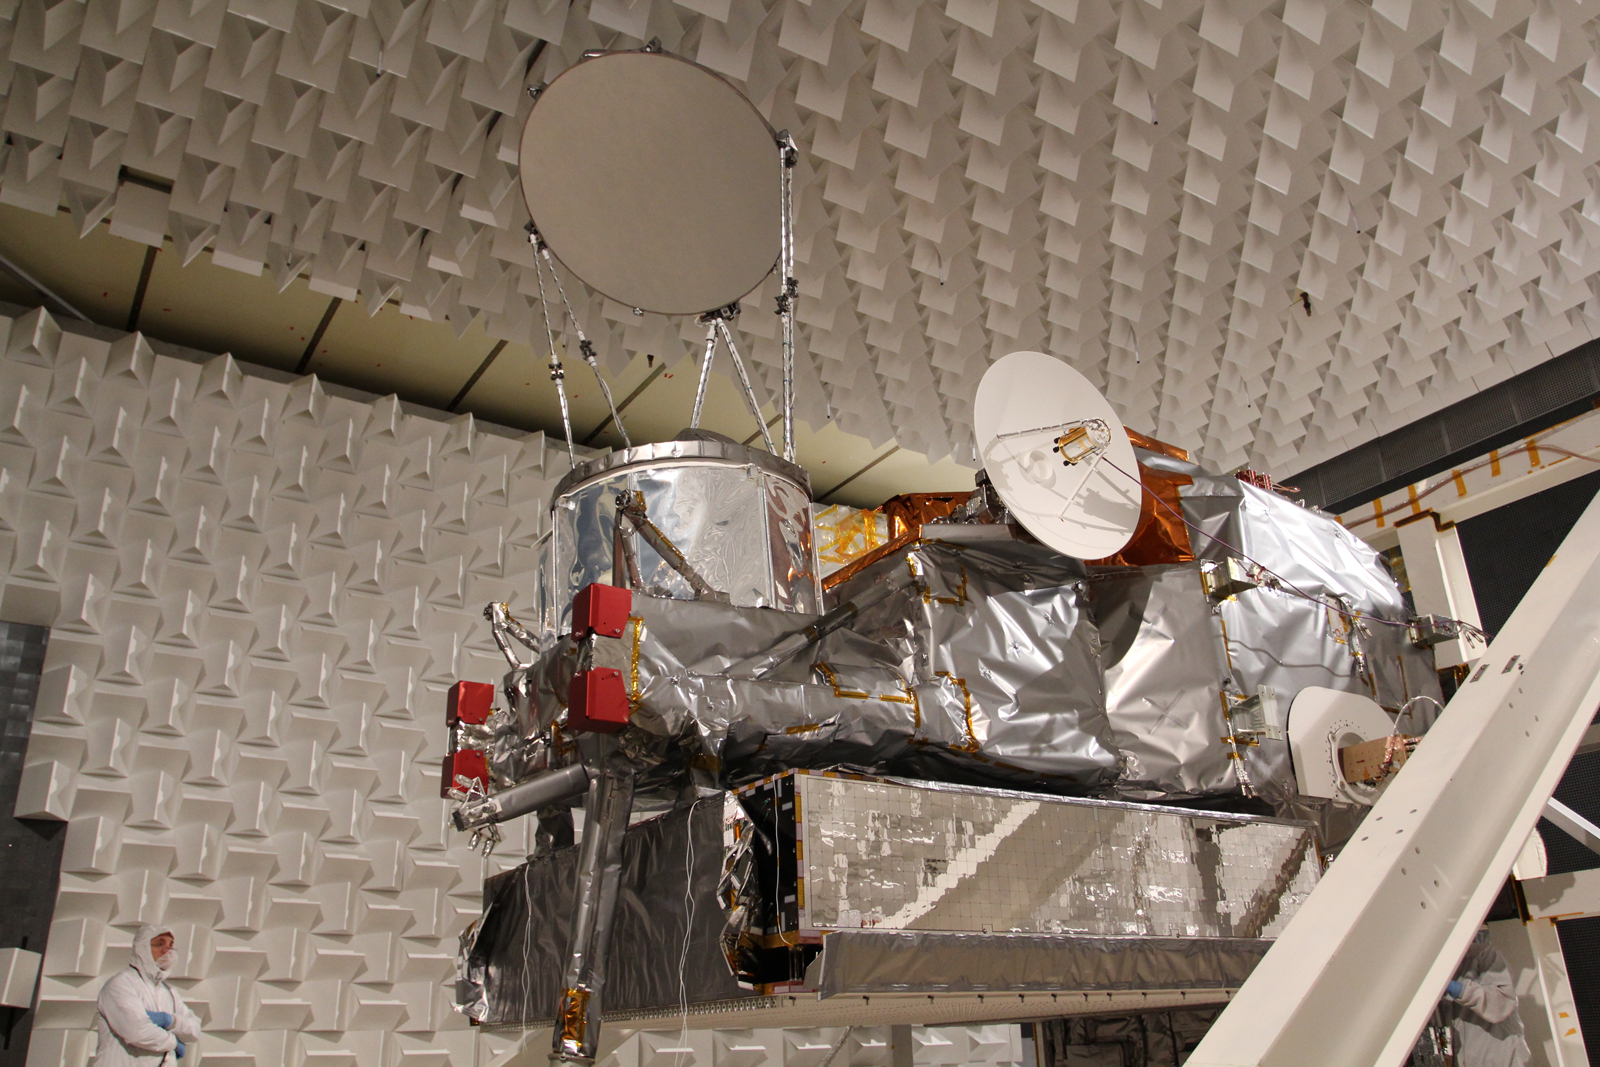 The GPM Core Observatory completed the EMI/EMC test at Goddard Space Flight Center in May 2013. The Observatory is now going through pre-vibration activities, including solar array deployments.